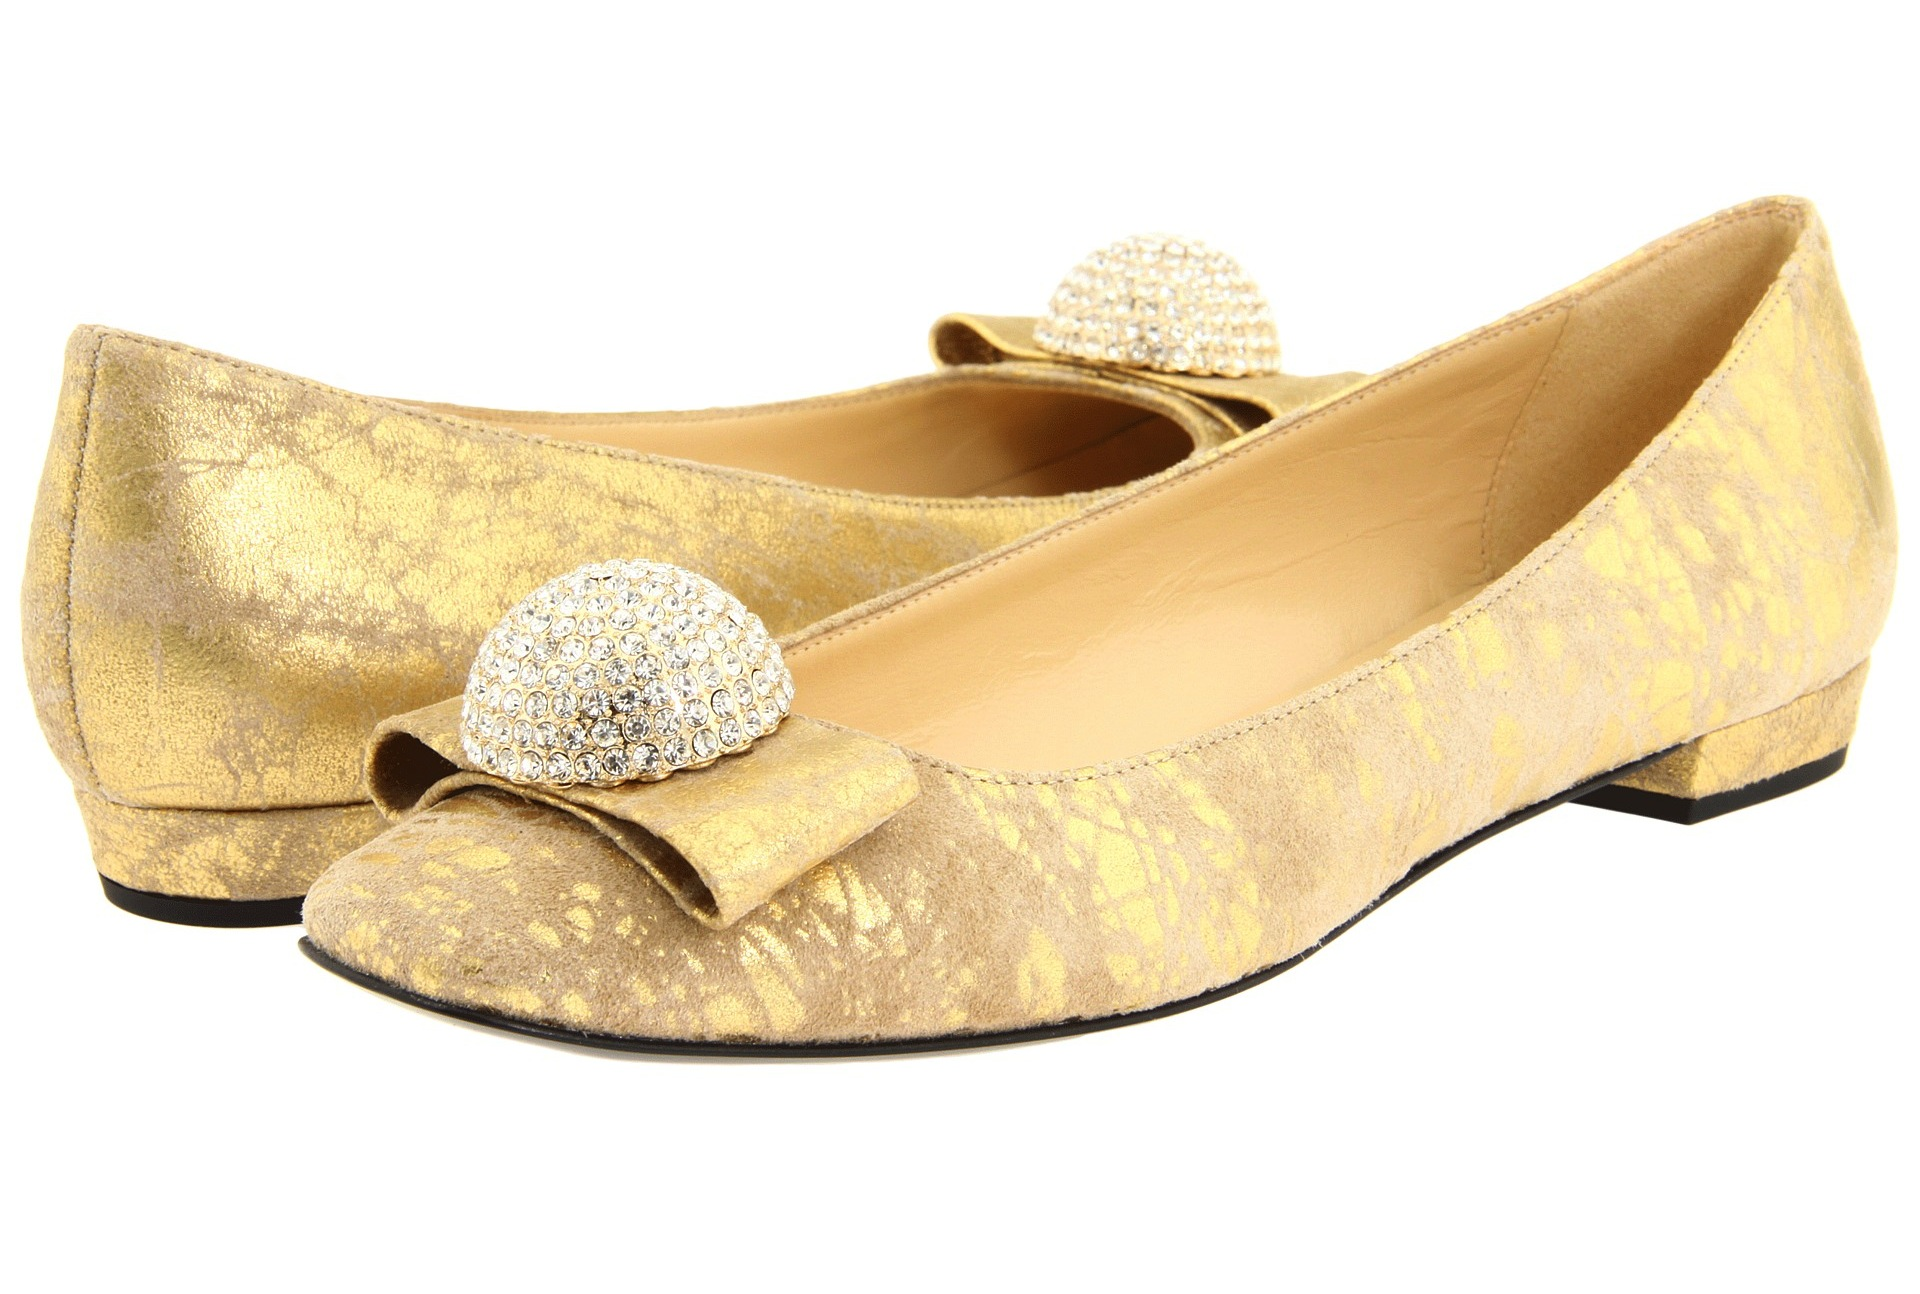 Gold Wedding Shoes Ballet Flats with Rhinestone Detail ...